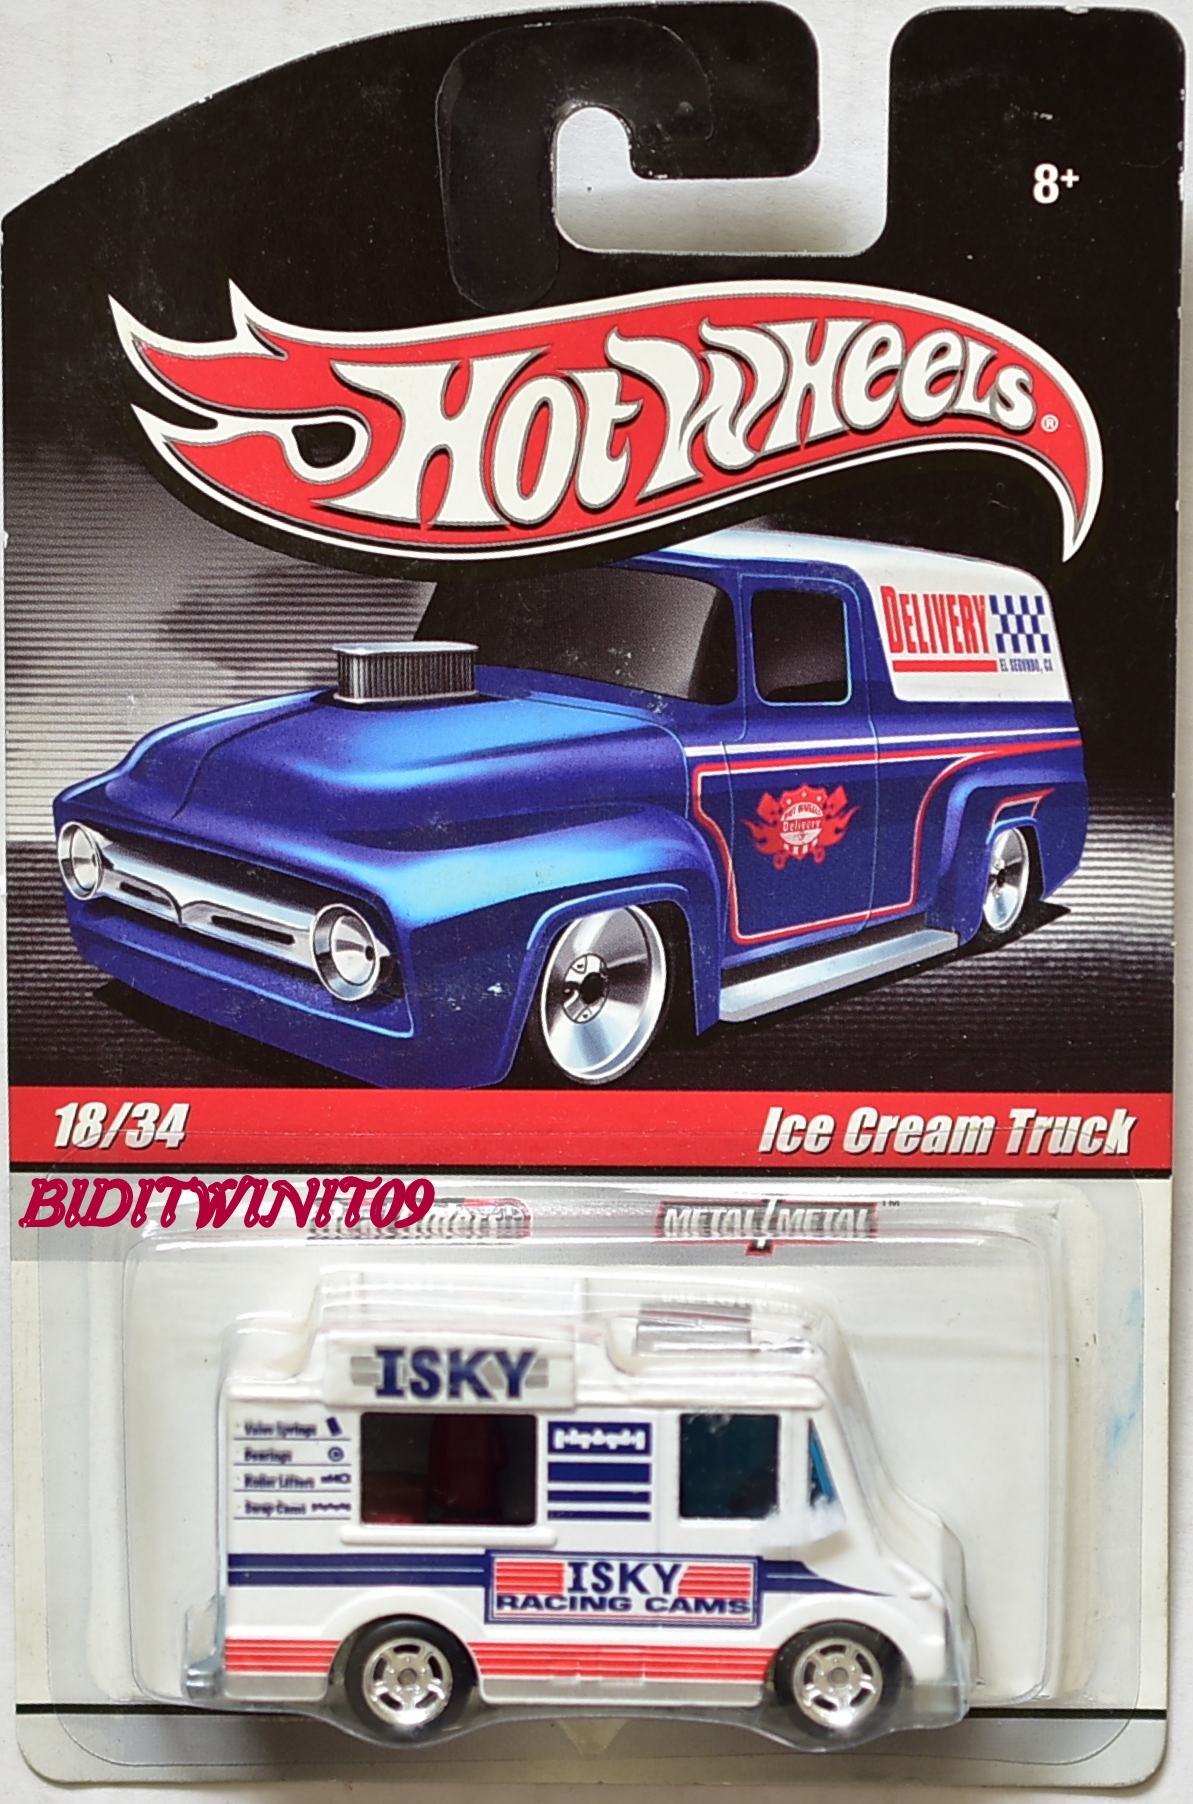 HOT WHEELS DELIVERY ICE CREAM TRUCK #18/34